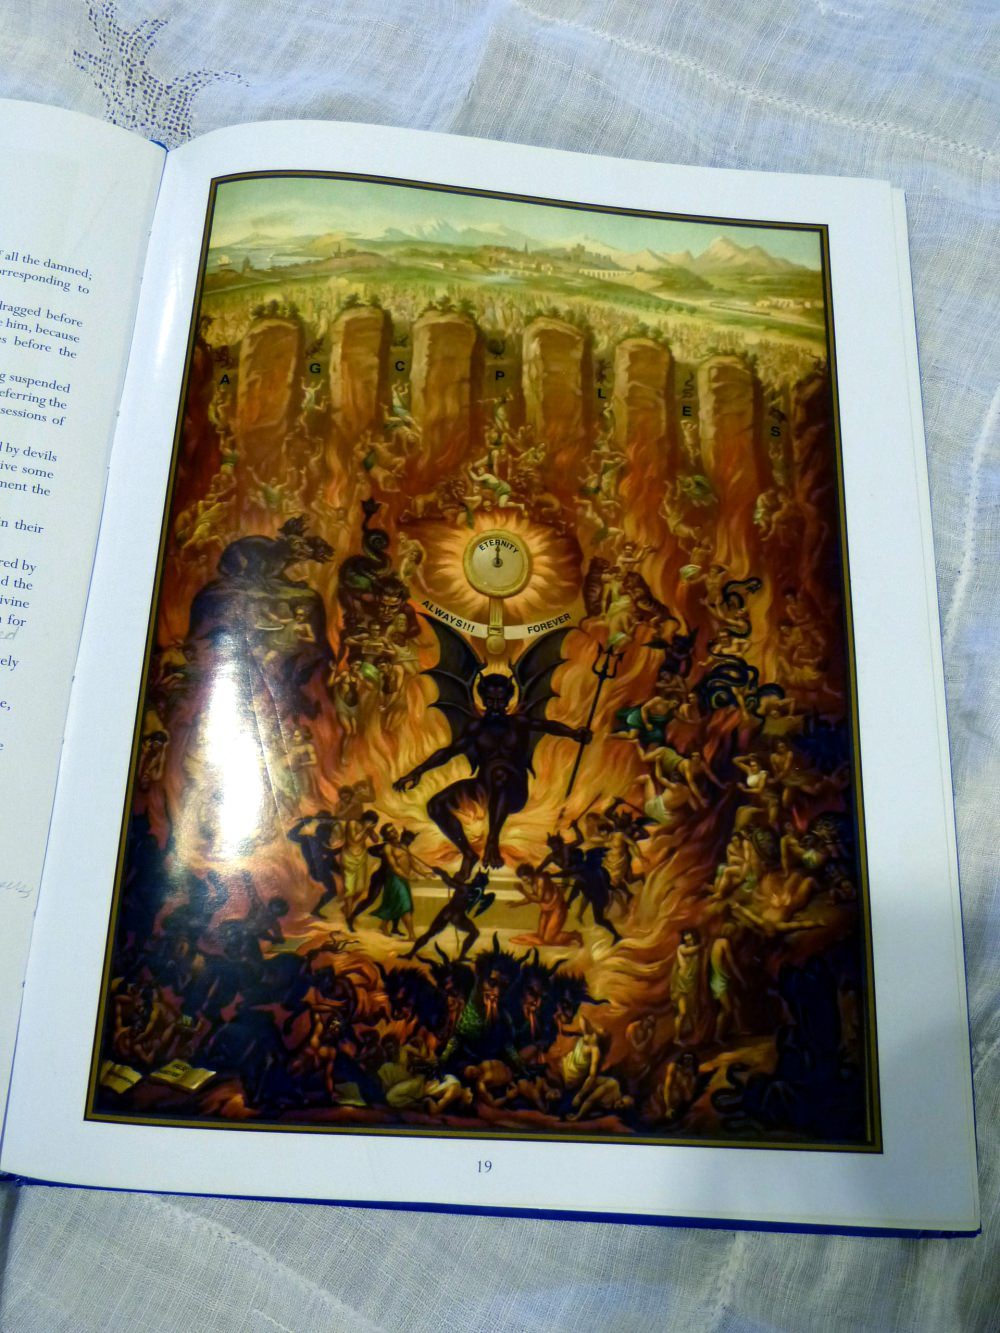 Catholic Books: The Catechism In Pictures - Teaches the doctrine of sin and Hell better than any other catechism!